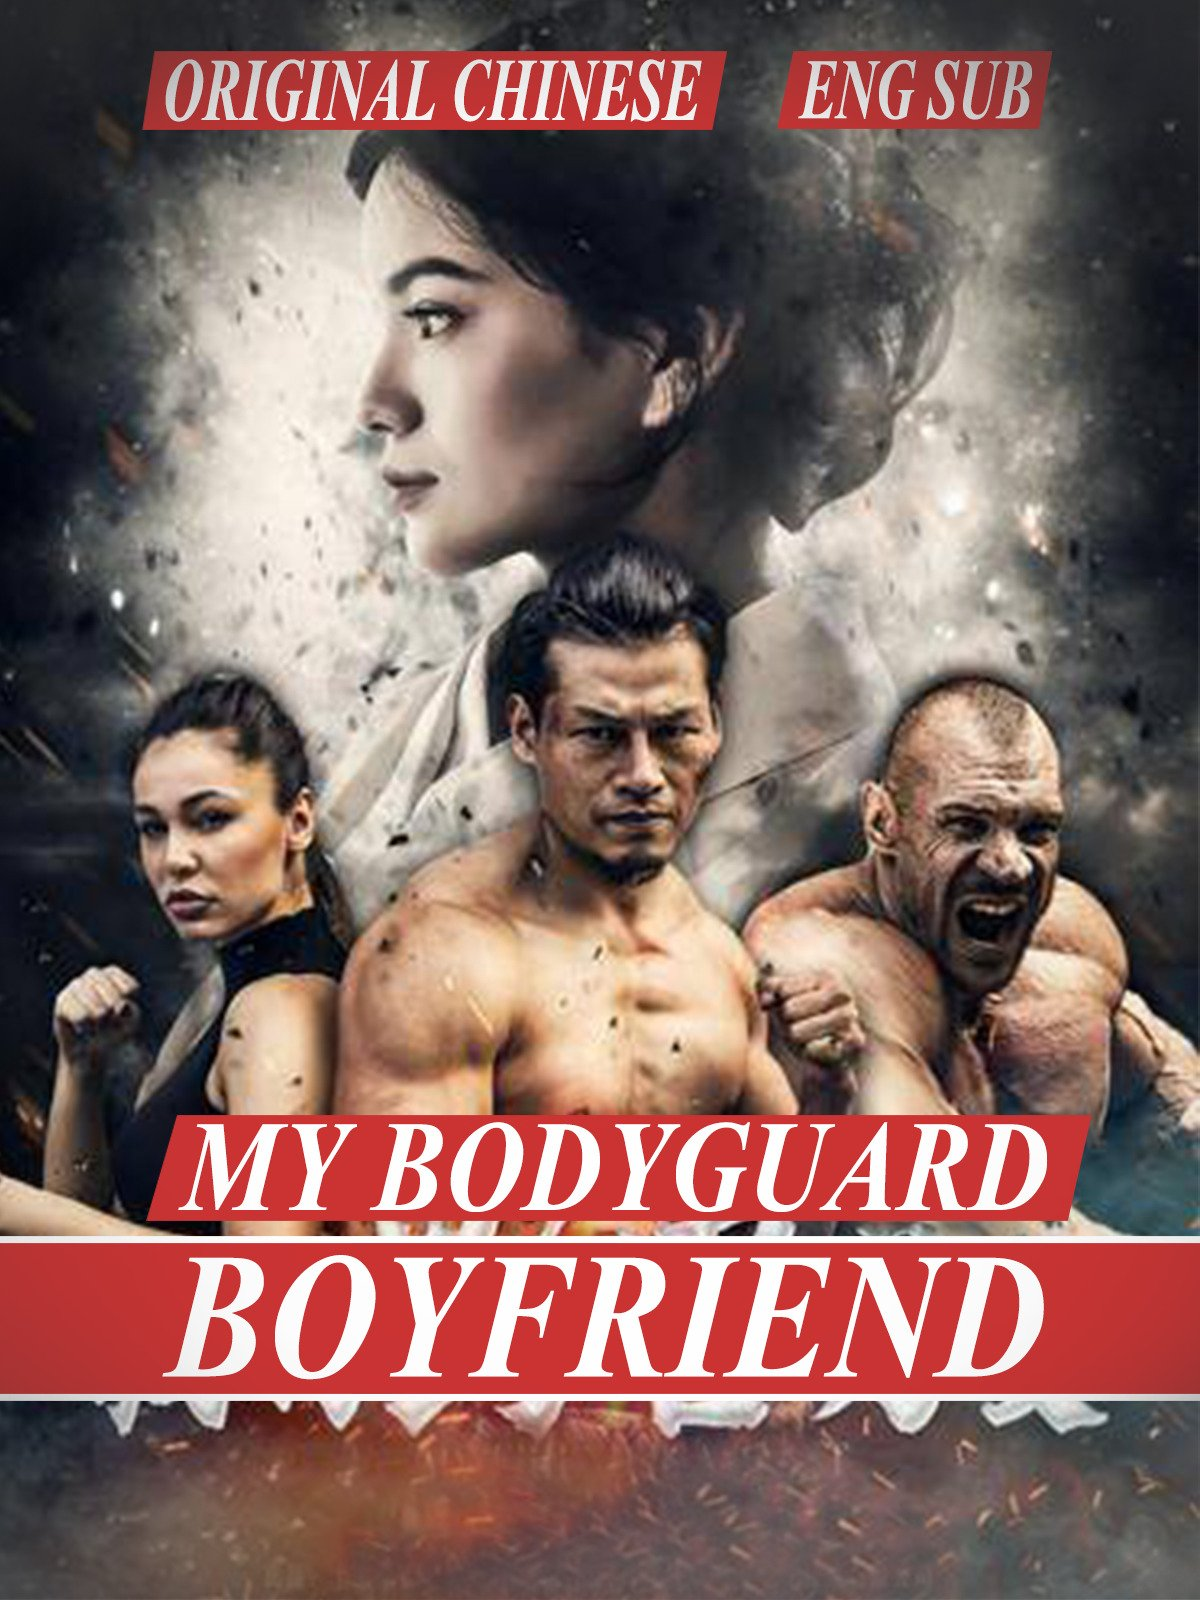 My Bodyguard Boyfriend [Eng Sub] original Chinese on Amazon Prime Instant Video UK